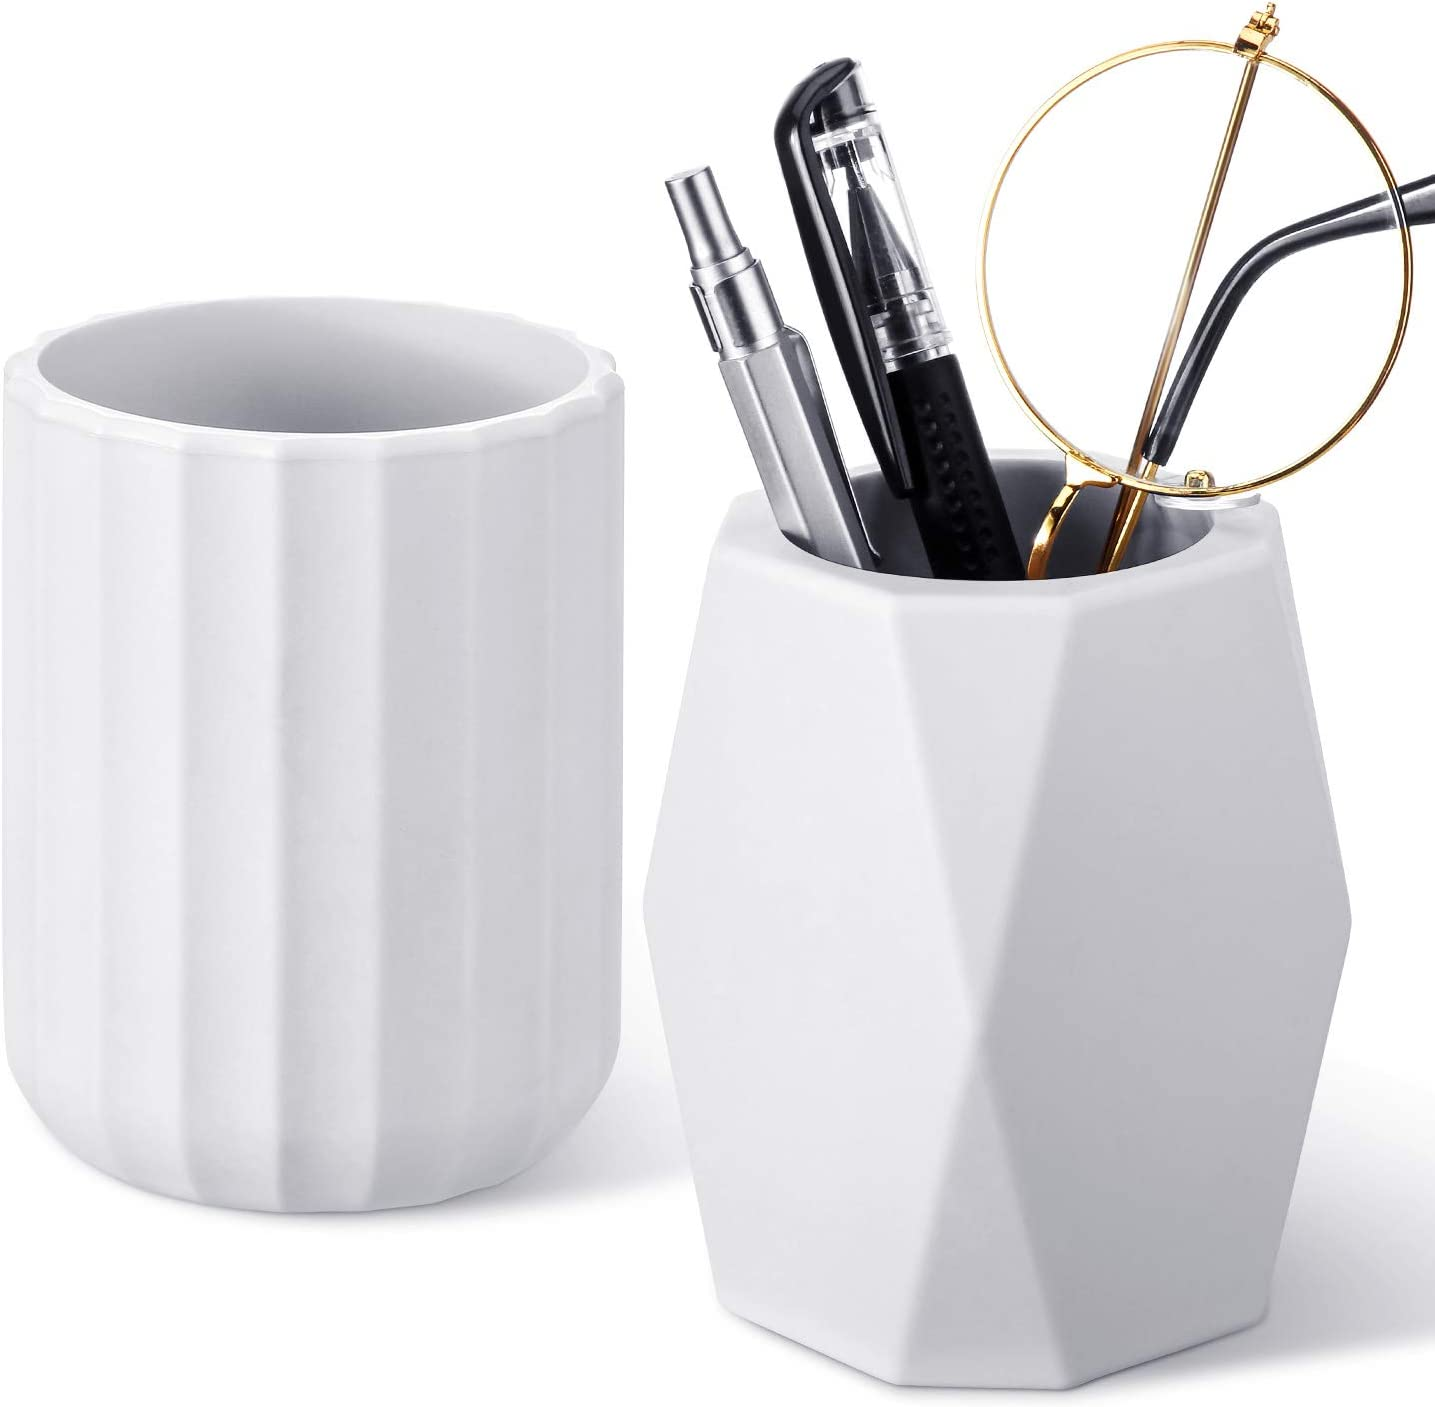 2 Pieces Silicone Pencil Holder Geometric Pen Cup Round Pen Container Desktop Pencil Stationary Holders Makeup Brush Holder for School Office Home Desk Supplies